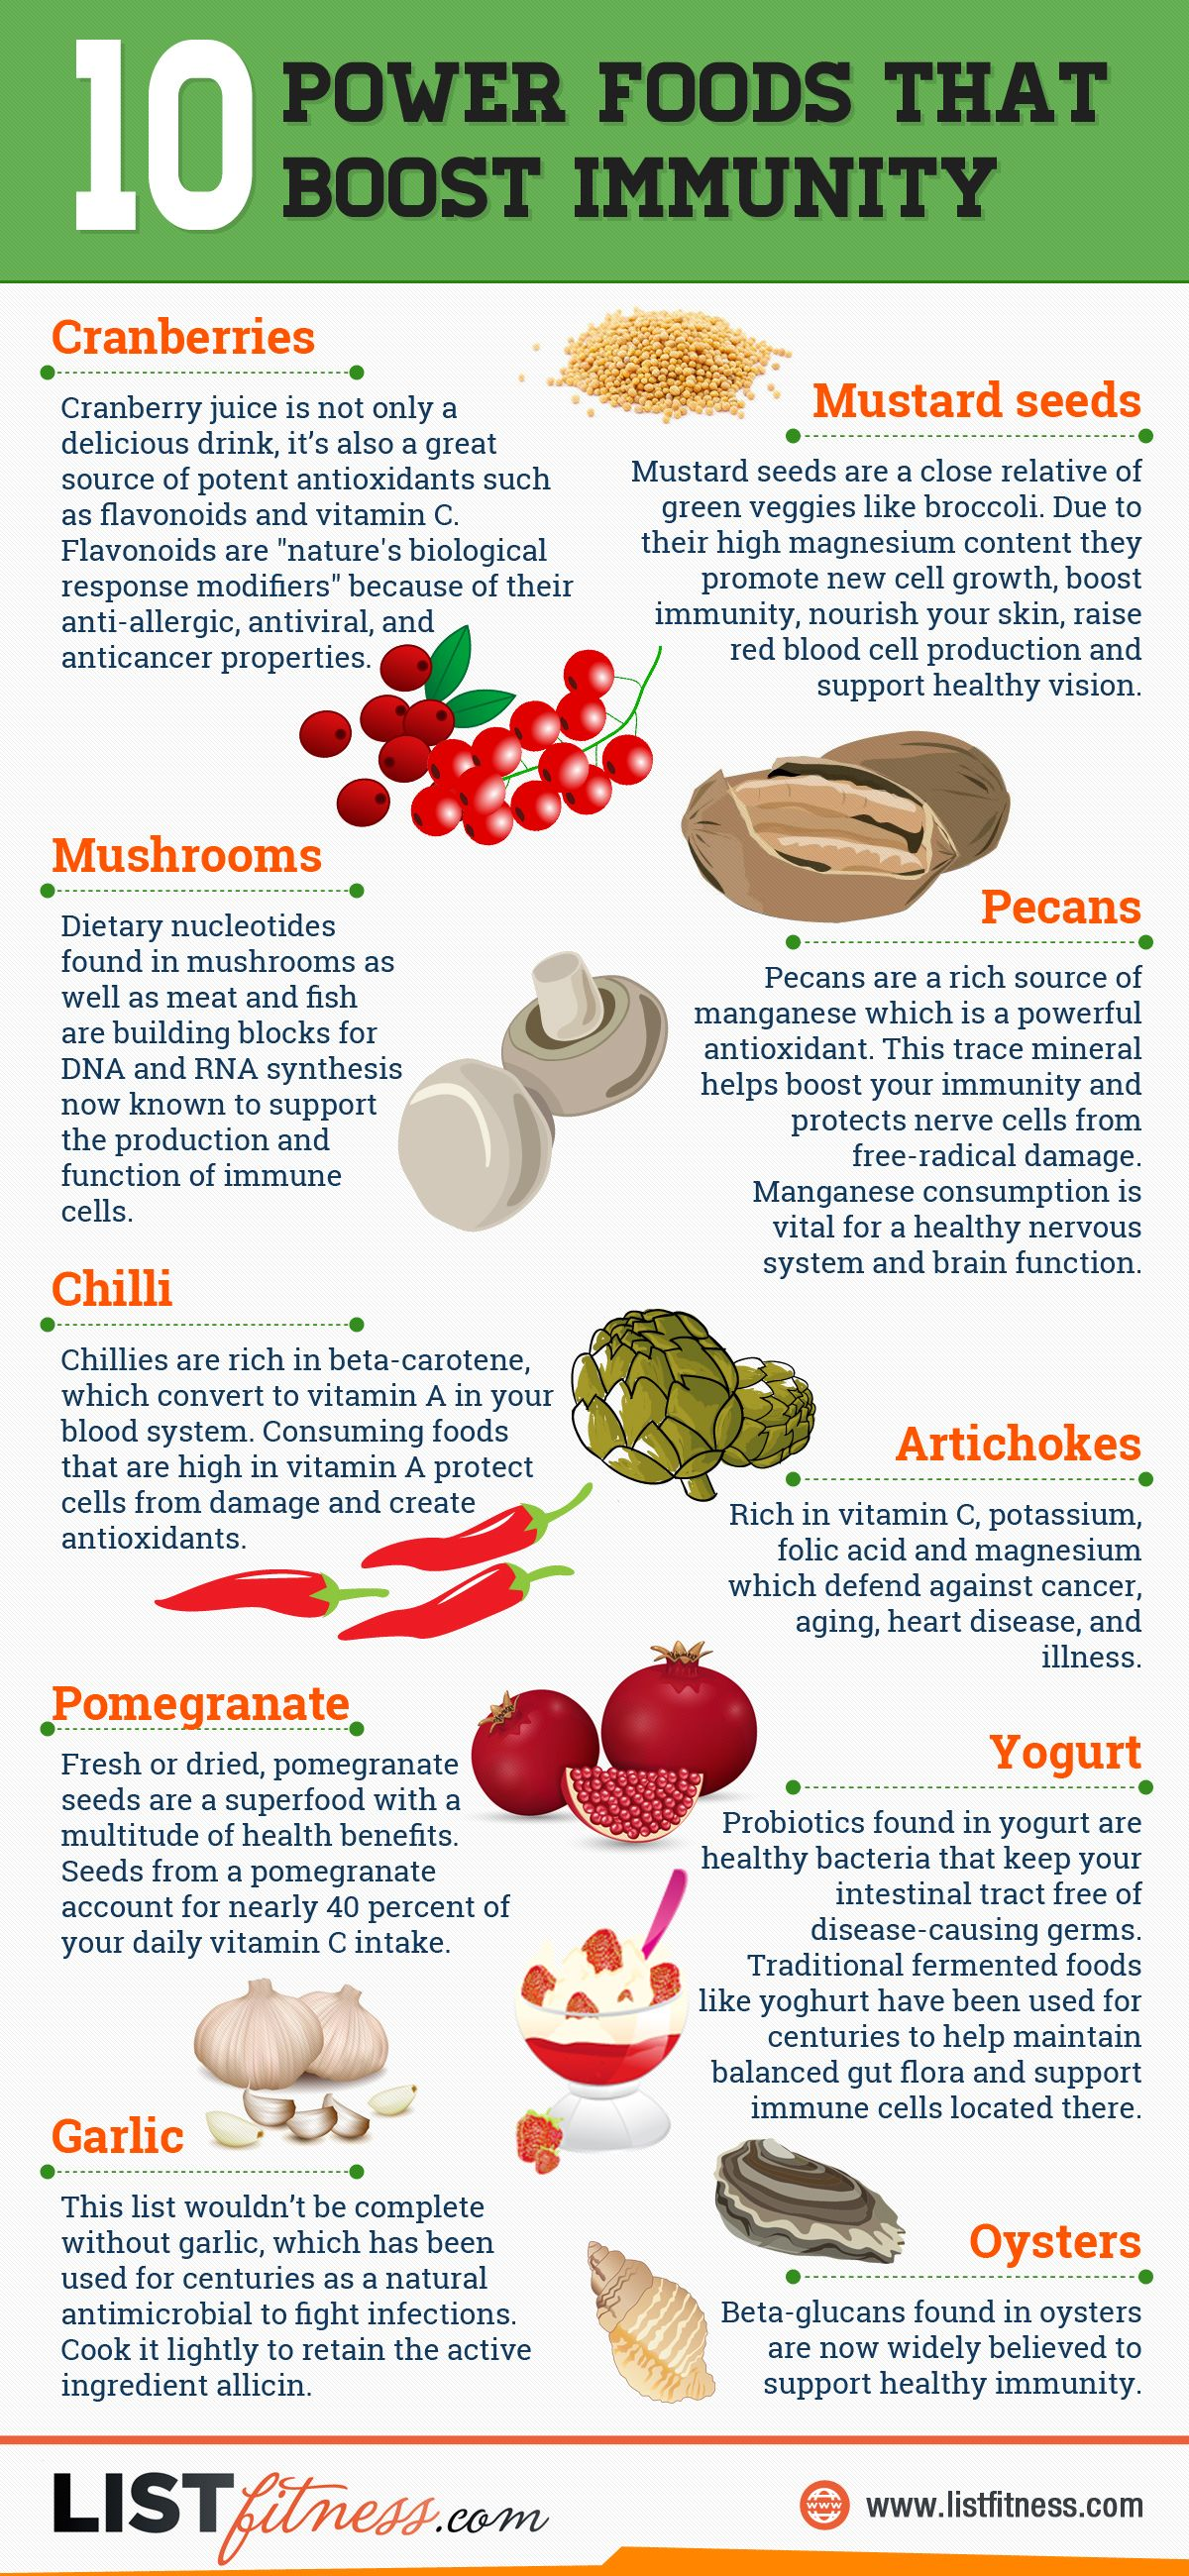 10 Power Foods That Boost Immunity